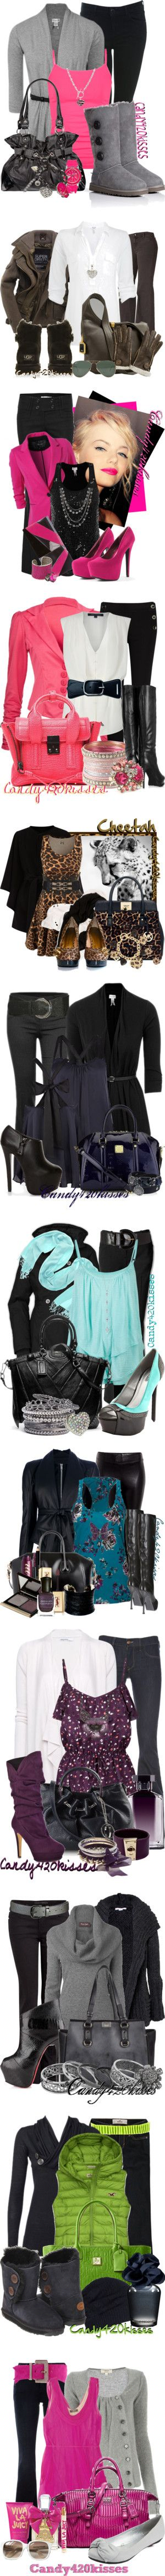 """recent fall sets"" by candy420kisses on Polyvore"